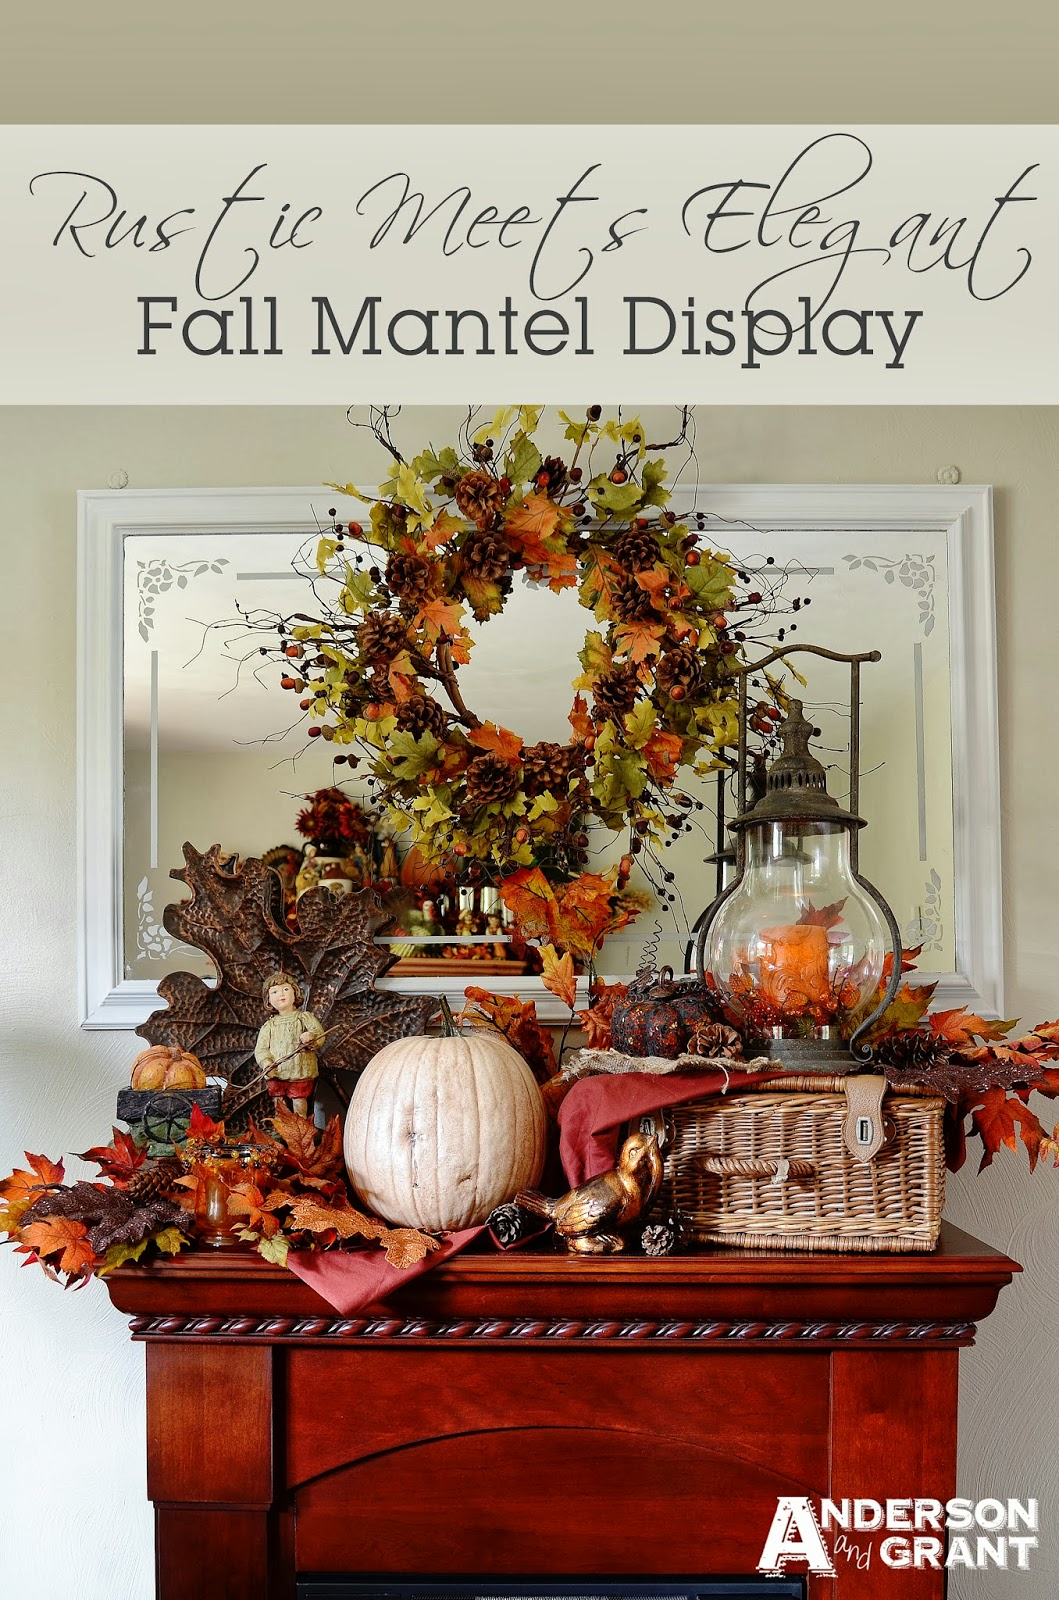 Rustic Meets Elegant Fall Mantel Display Anderson Grant